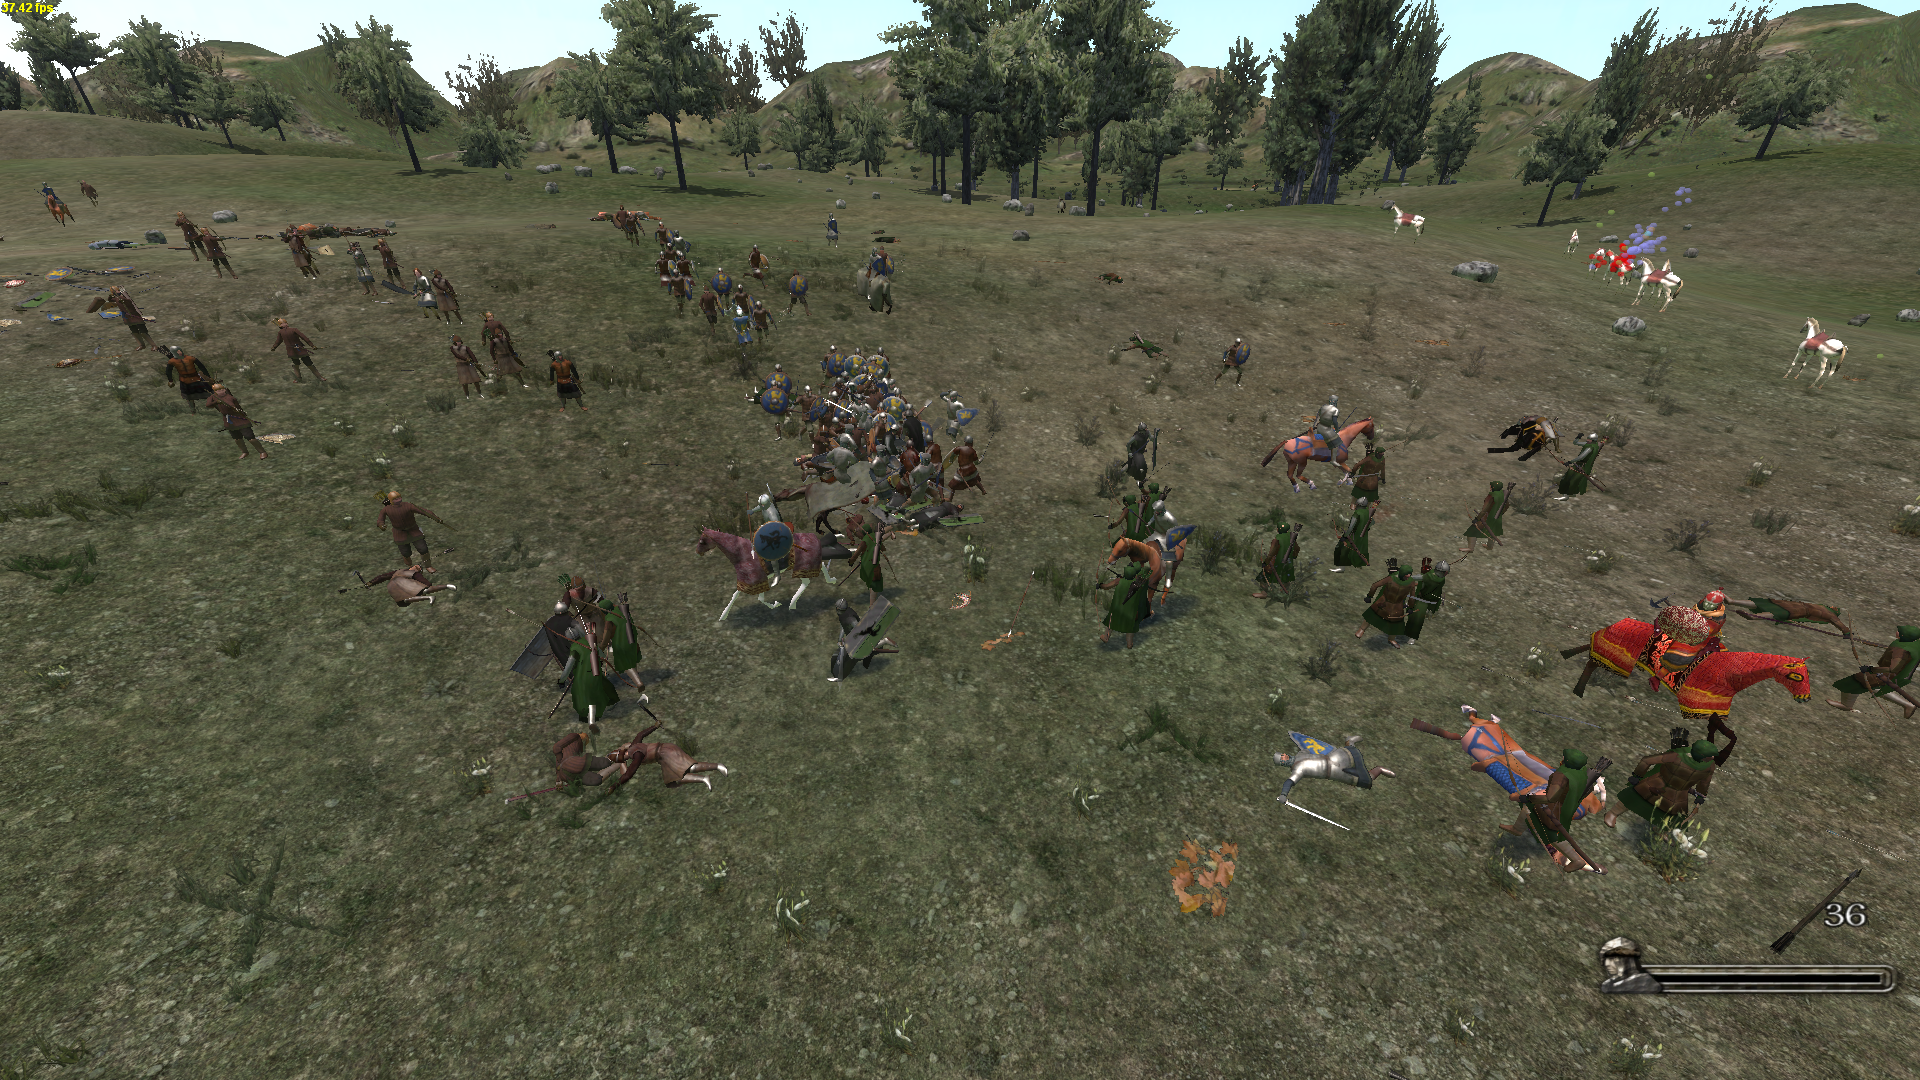 [A][ES] Sword of Damocles: Warlords Mb_warband_2011-11-12_16-57-24-43